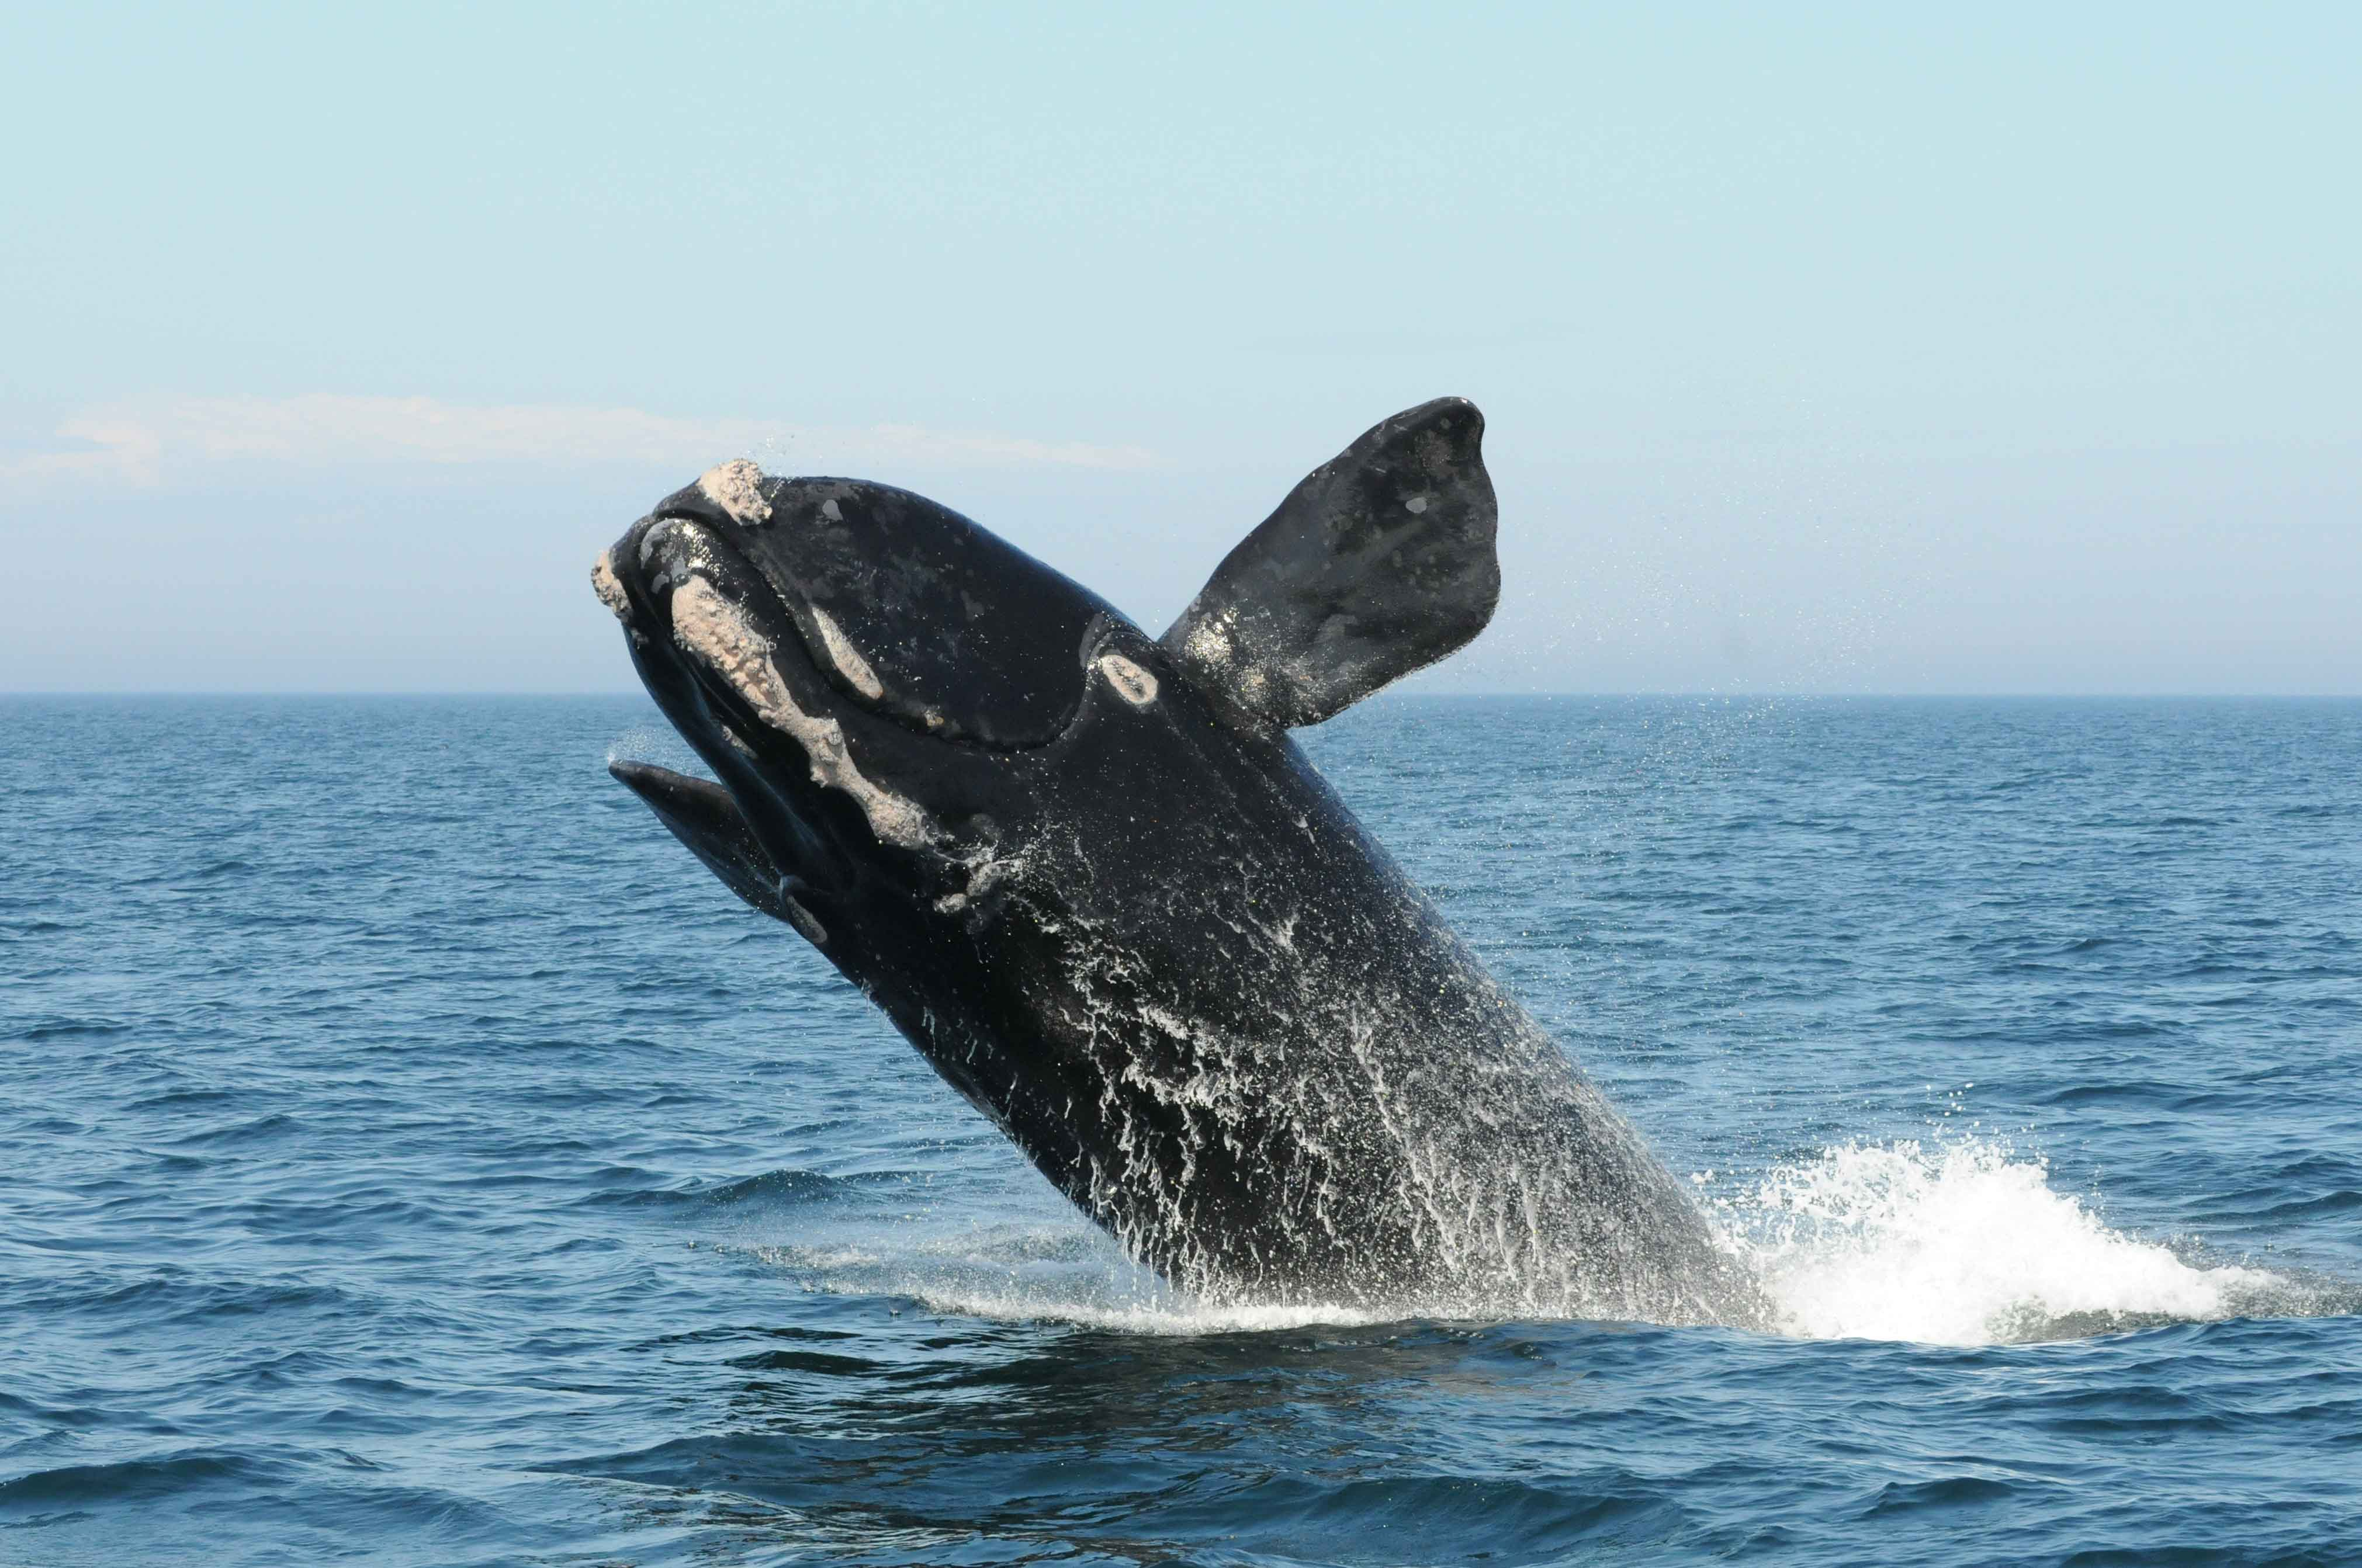 Right whale jumping out of the water